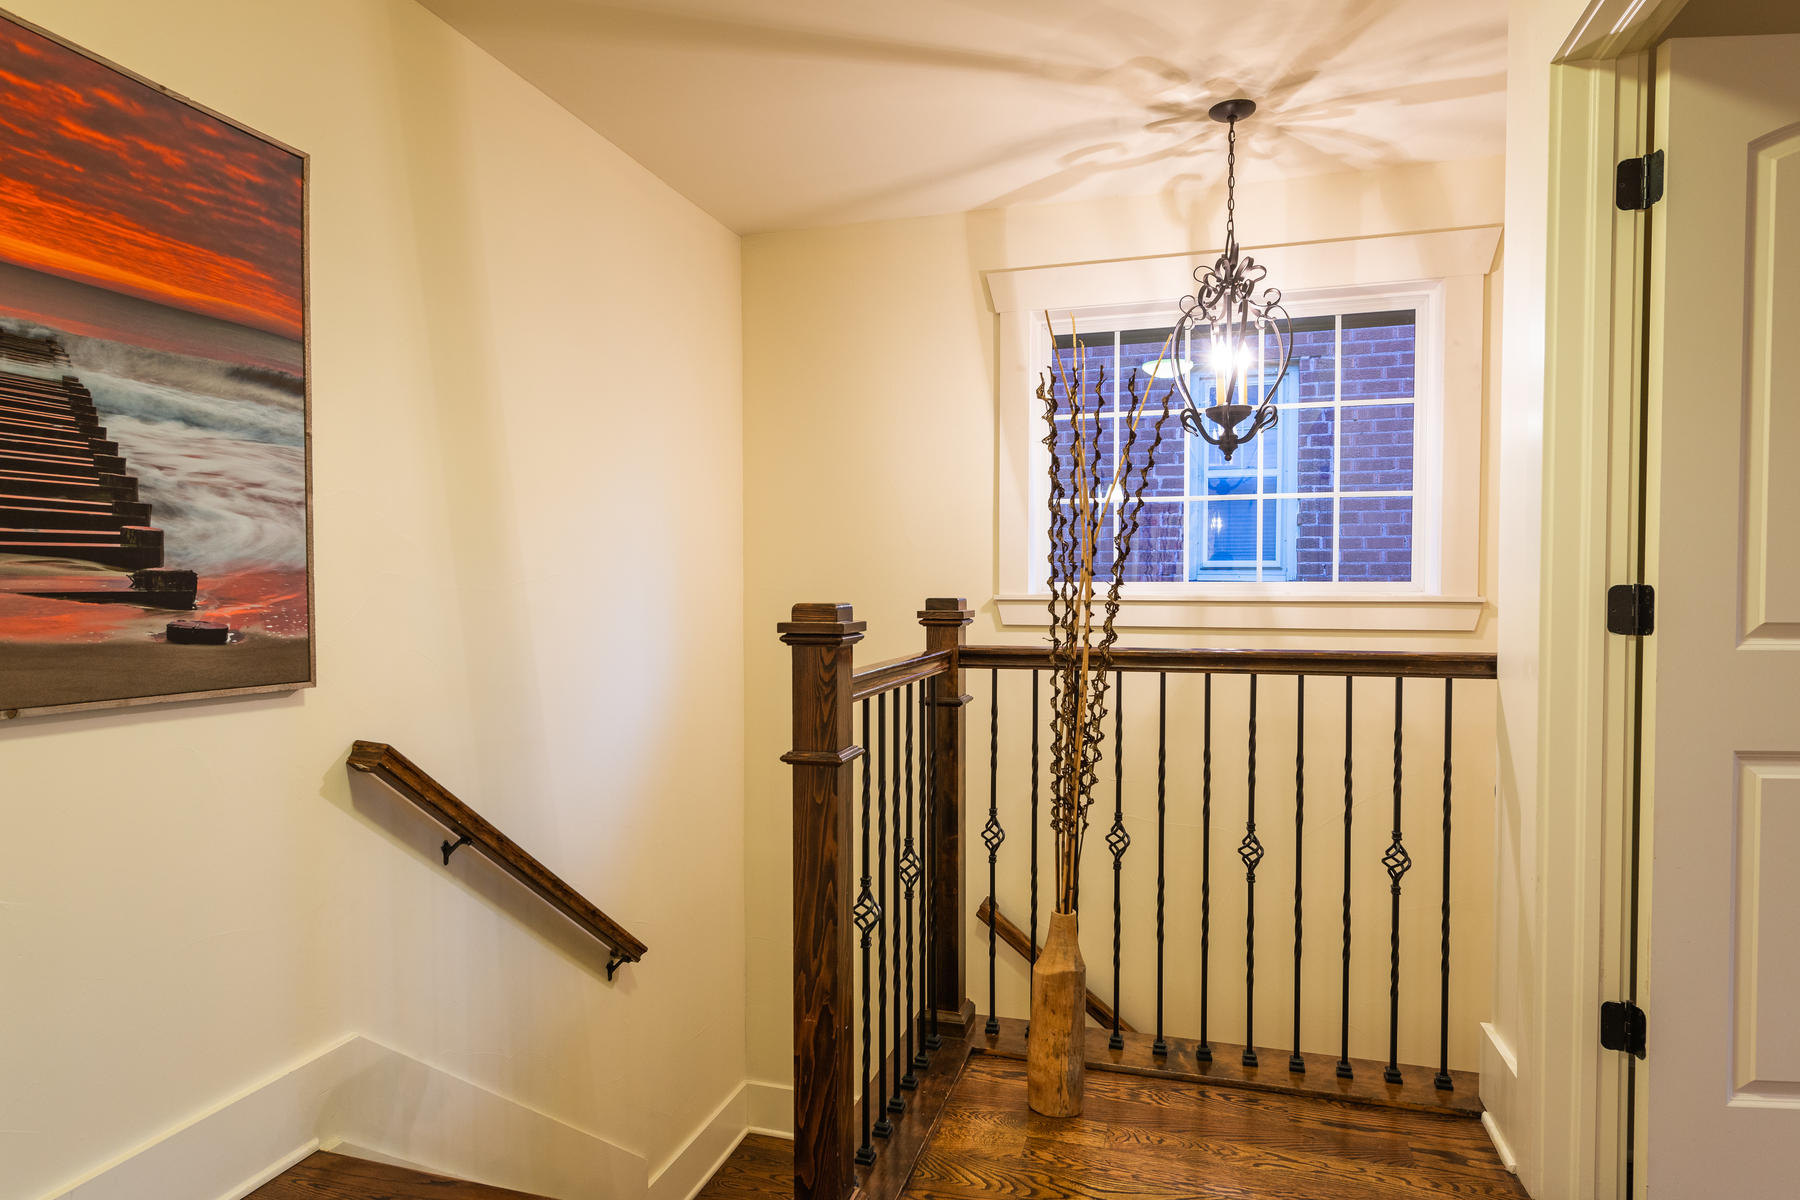 Additional photo for property listing at Brilliant and ultra-cozy East Wash Park space created for entertaining! 545 S Race St Denver, Colorado 80209 United States